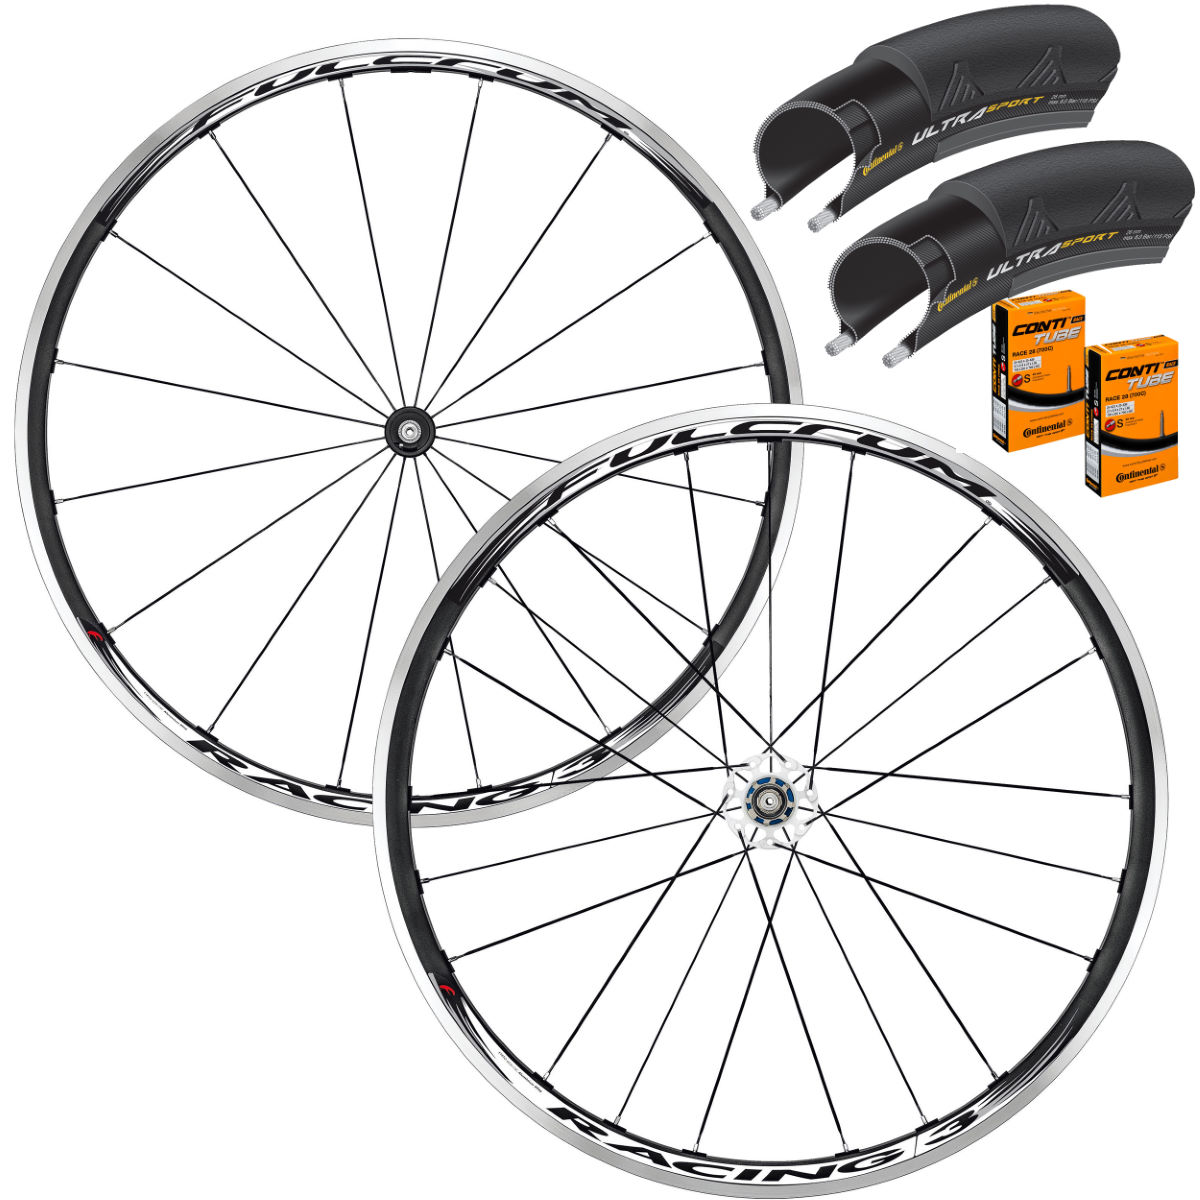 Fulcrum Racing 3 Wheelset Tyres & Tubes Bundle